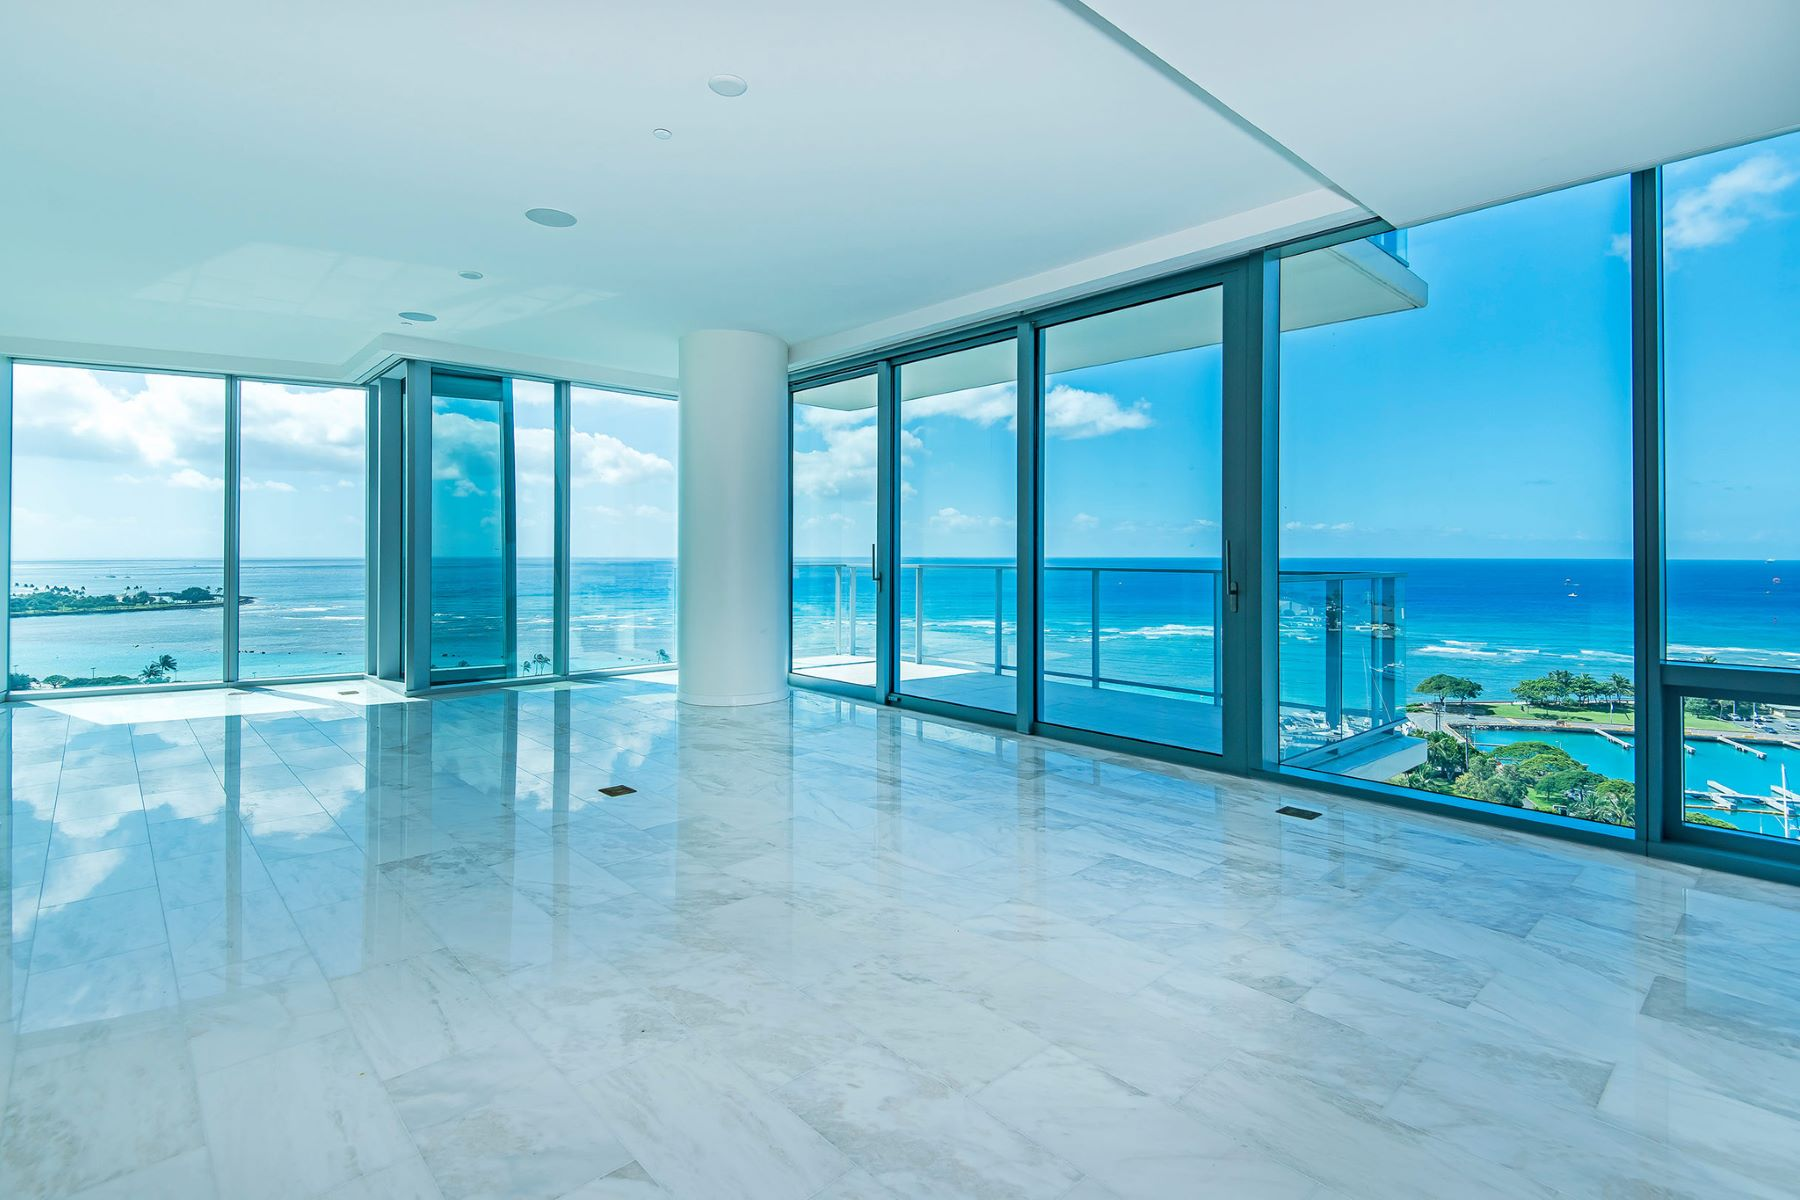 共管物業 為 出售 在 Panoramic Views 1118 Ala Moana Blvd #1700, Kakaako, Honolulu, 夏威夷, 96814 美國